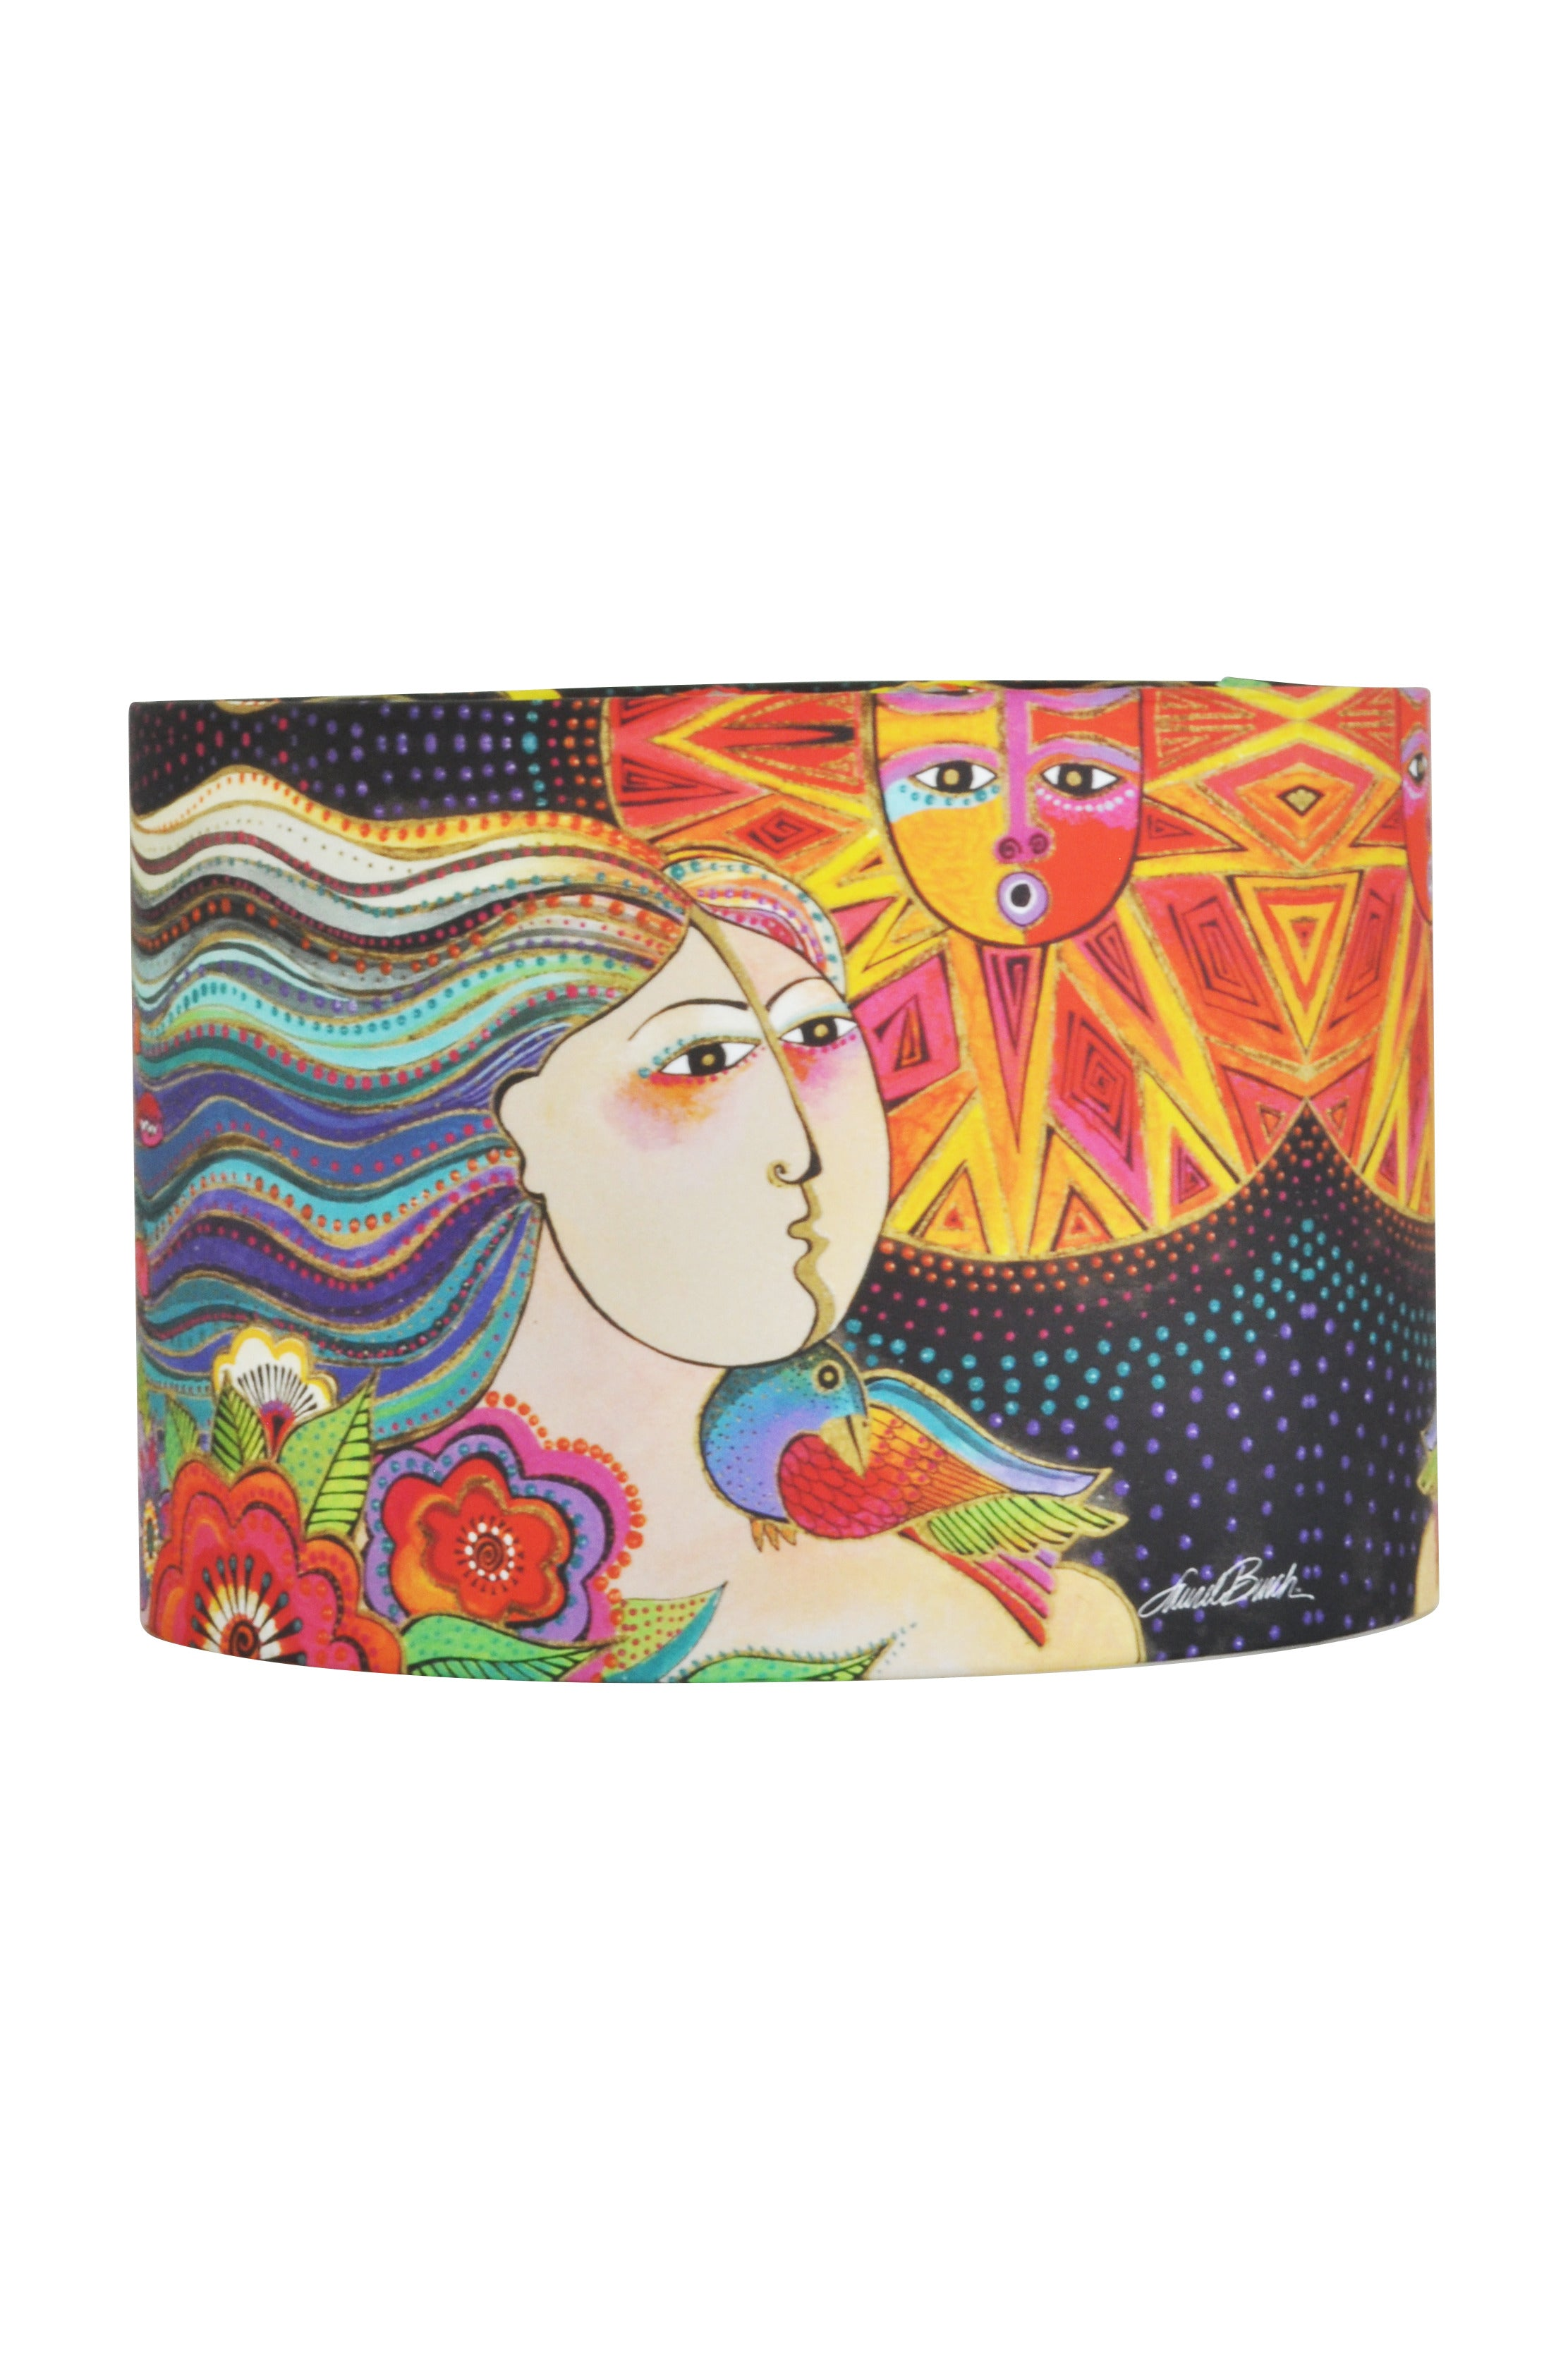 Laurel Burch Lampshades